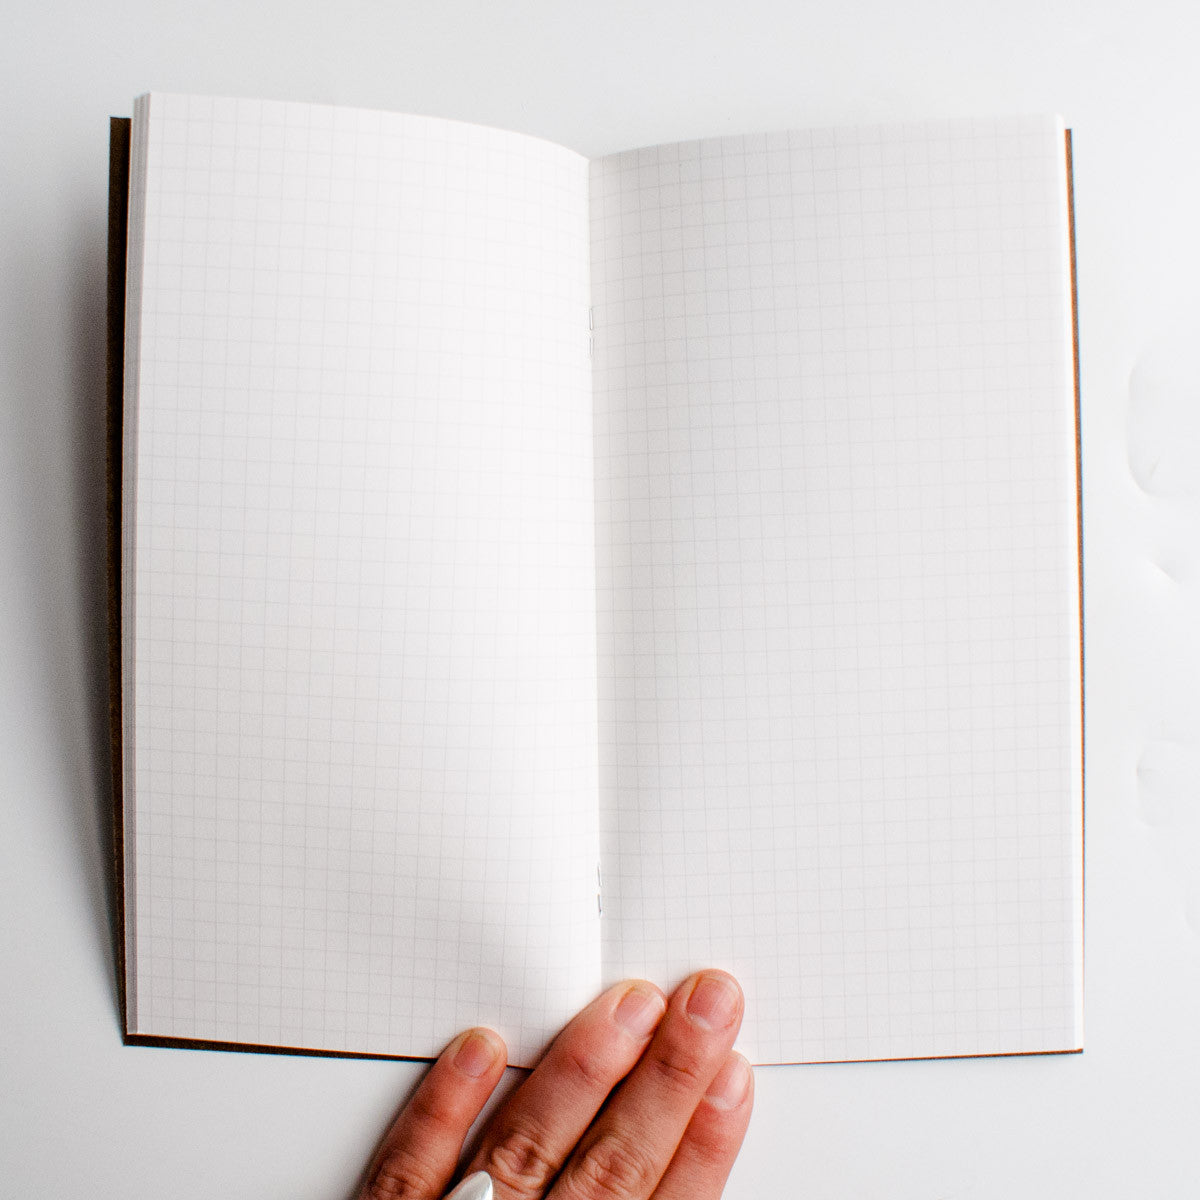 Midori Traveler's Notebook: 002 Grid Notebook Refill